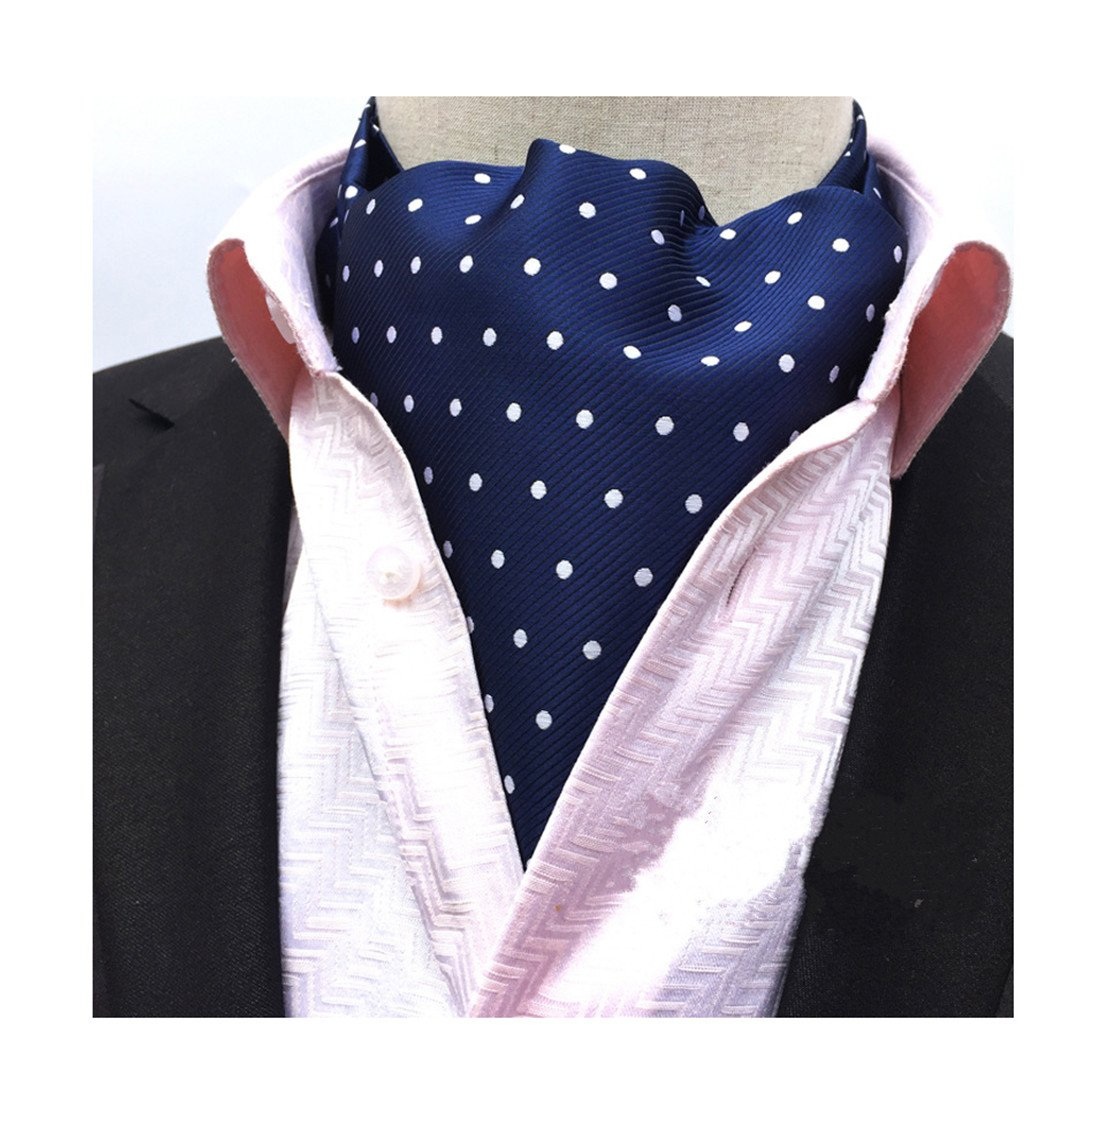 Secdtie Men's Blue Striped Polka Dot Silk Cravat Woven Ascot Jacquard Ties 017